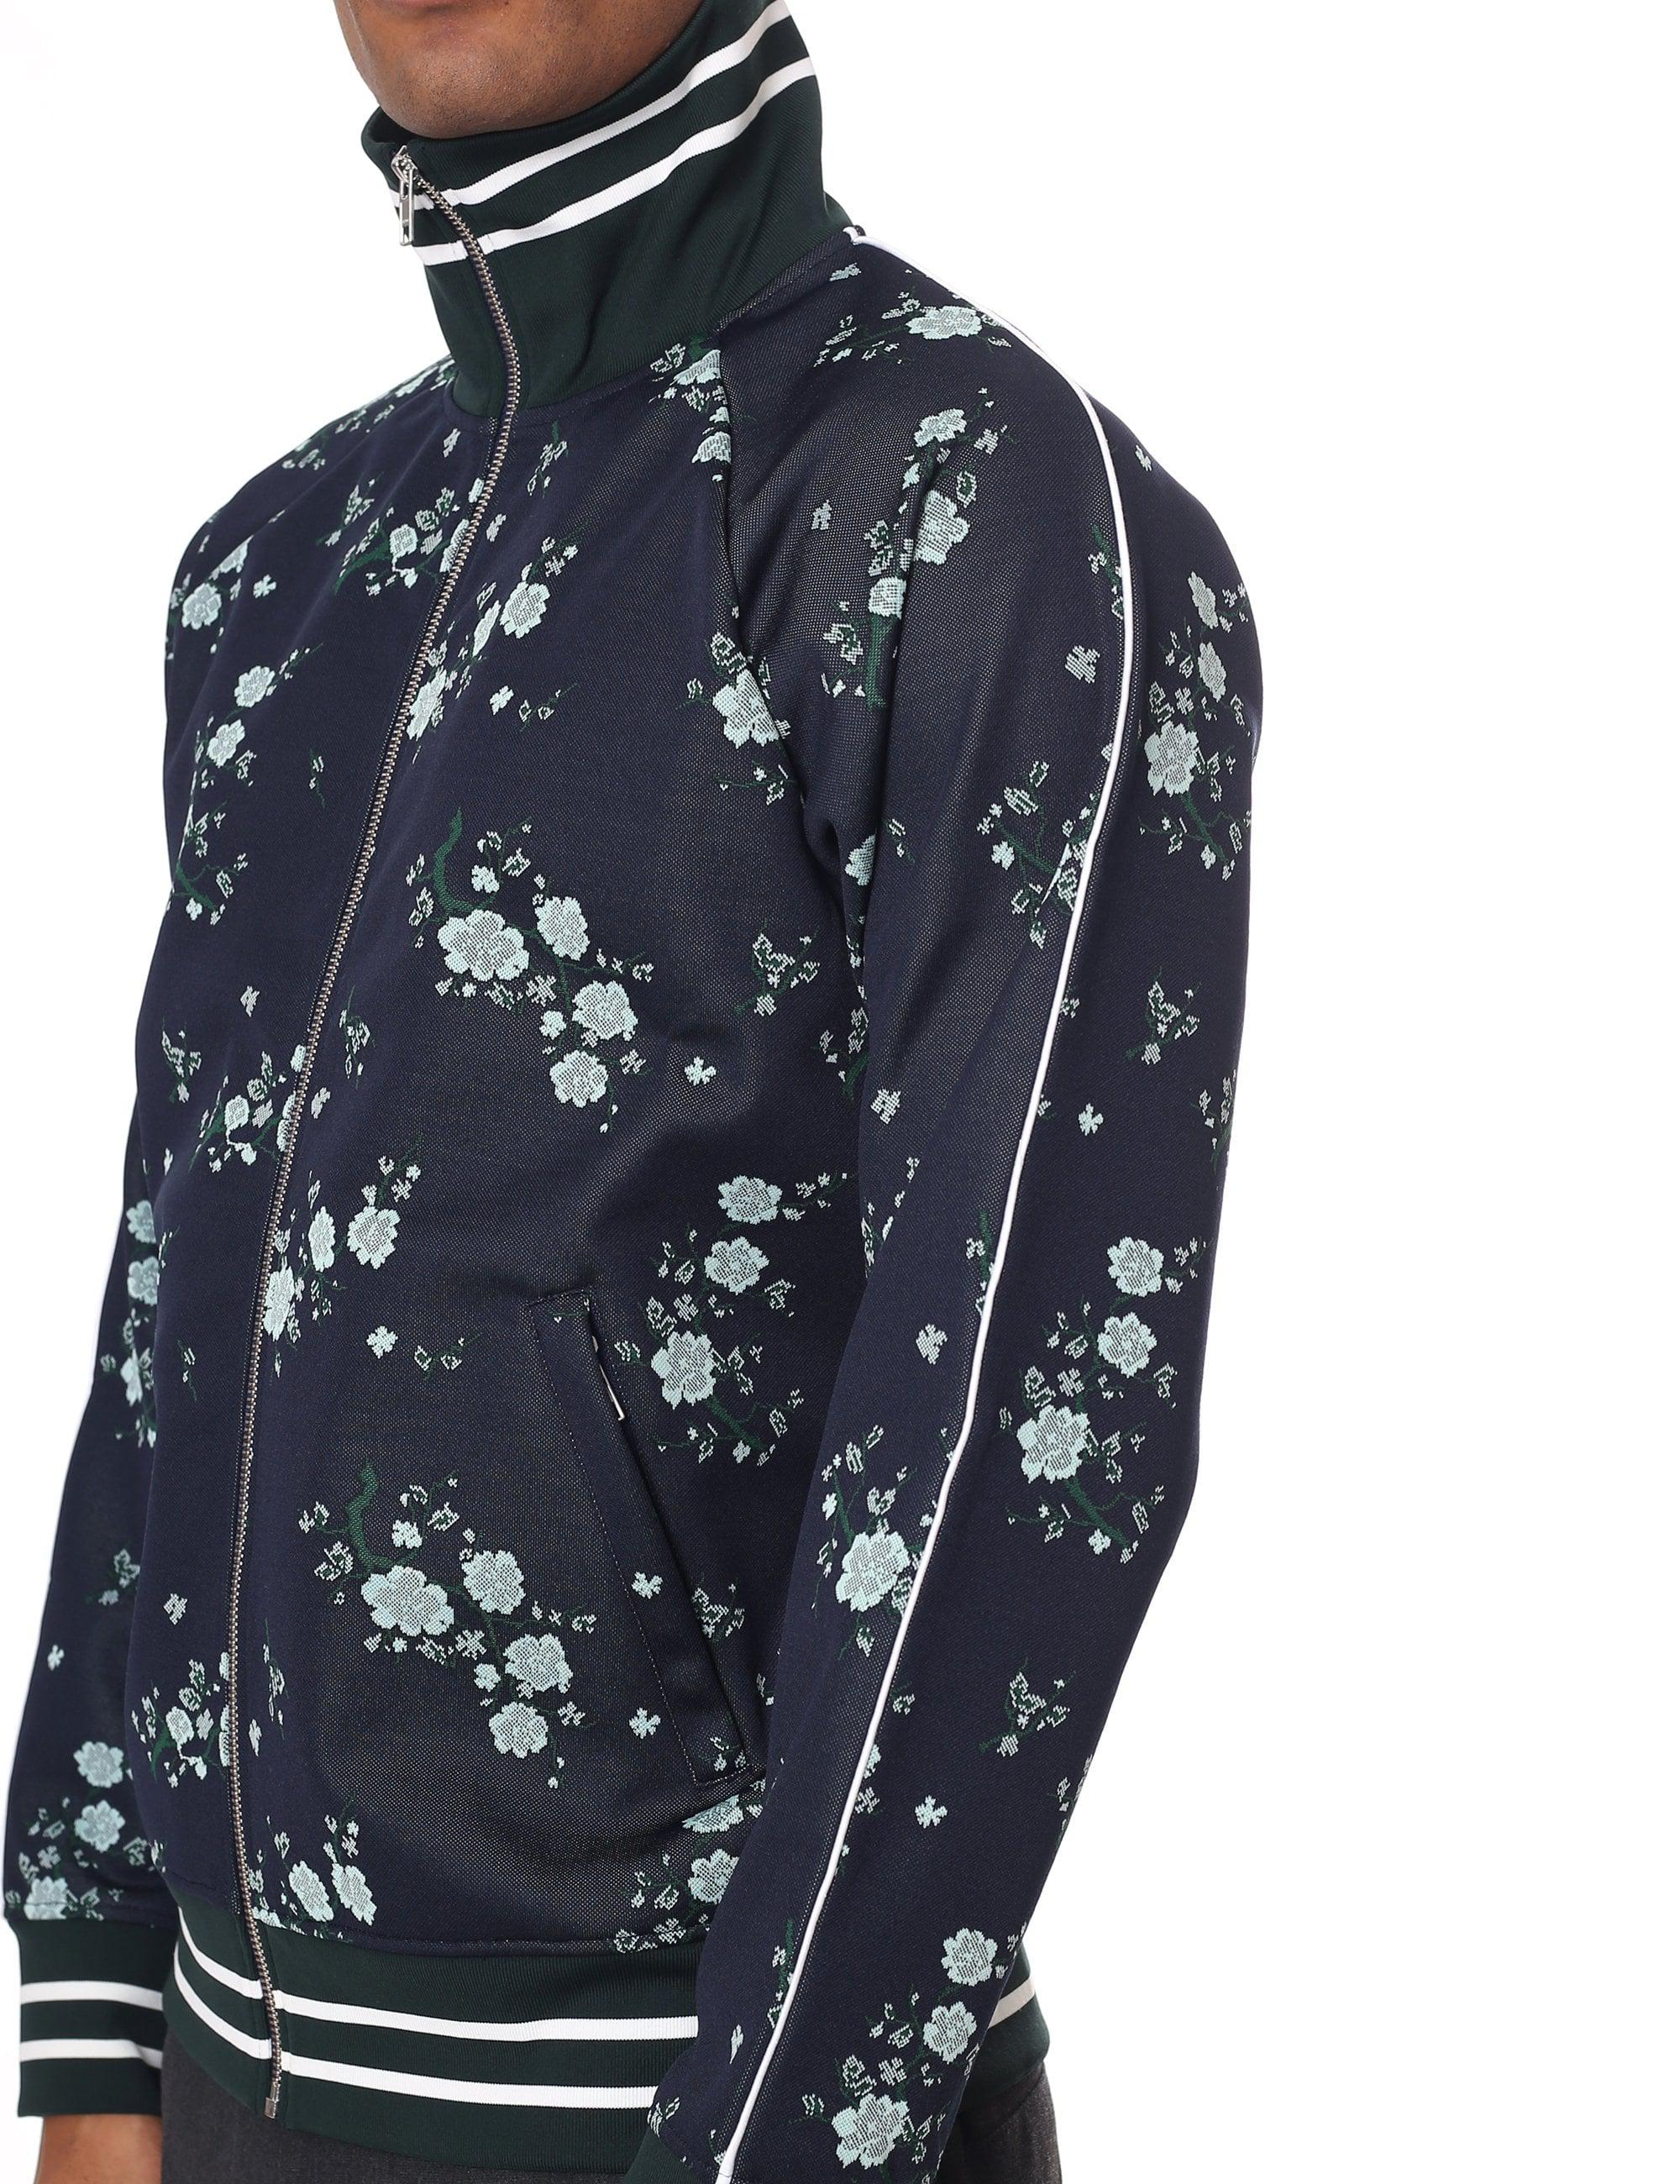 afaefd49deff8 KENZO - Blue Cheongsam Flower Jacket for Men - Lyst. View fullscreen